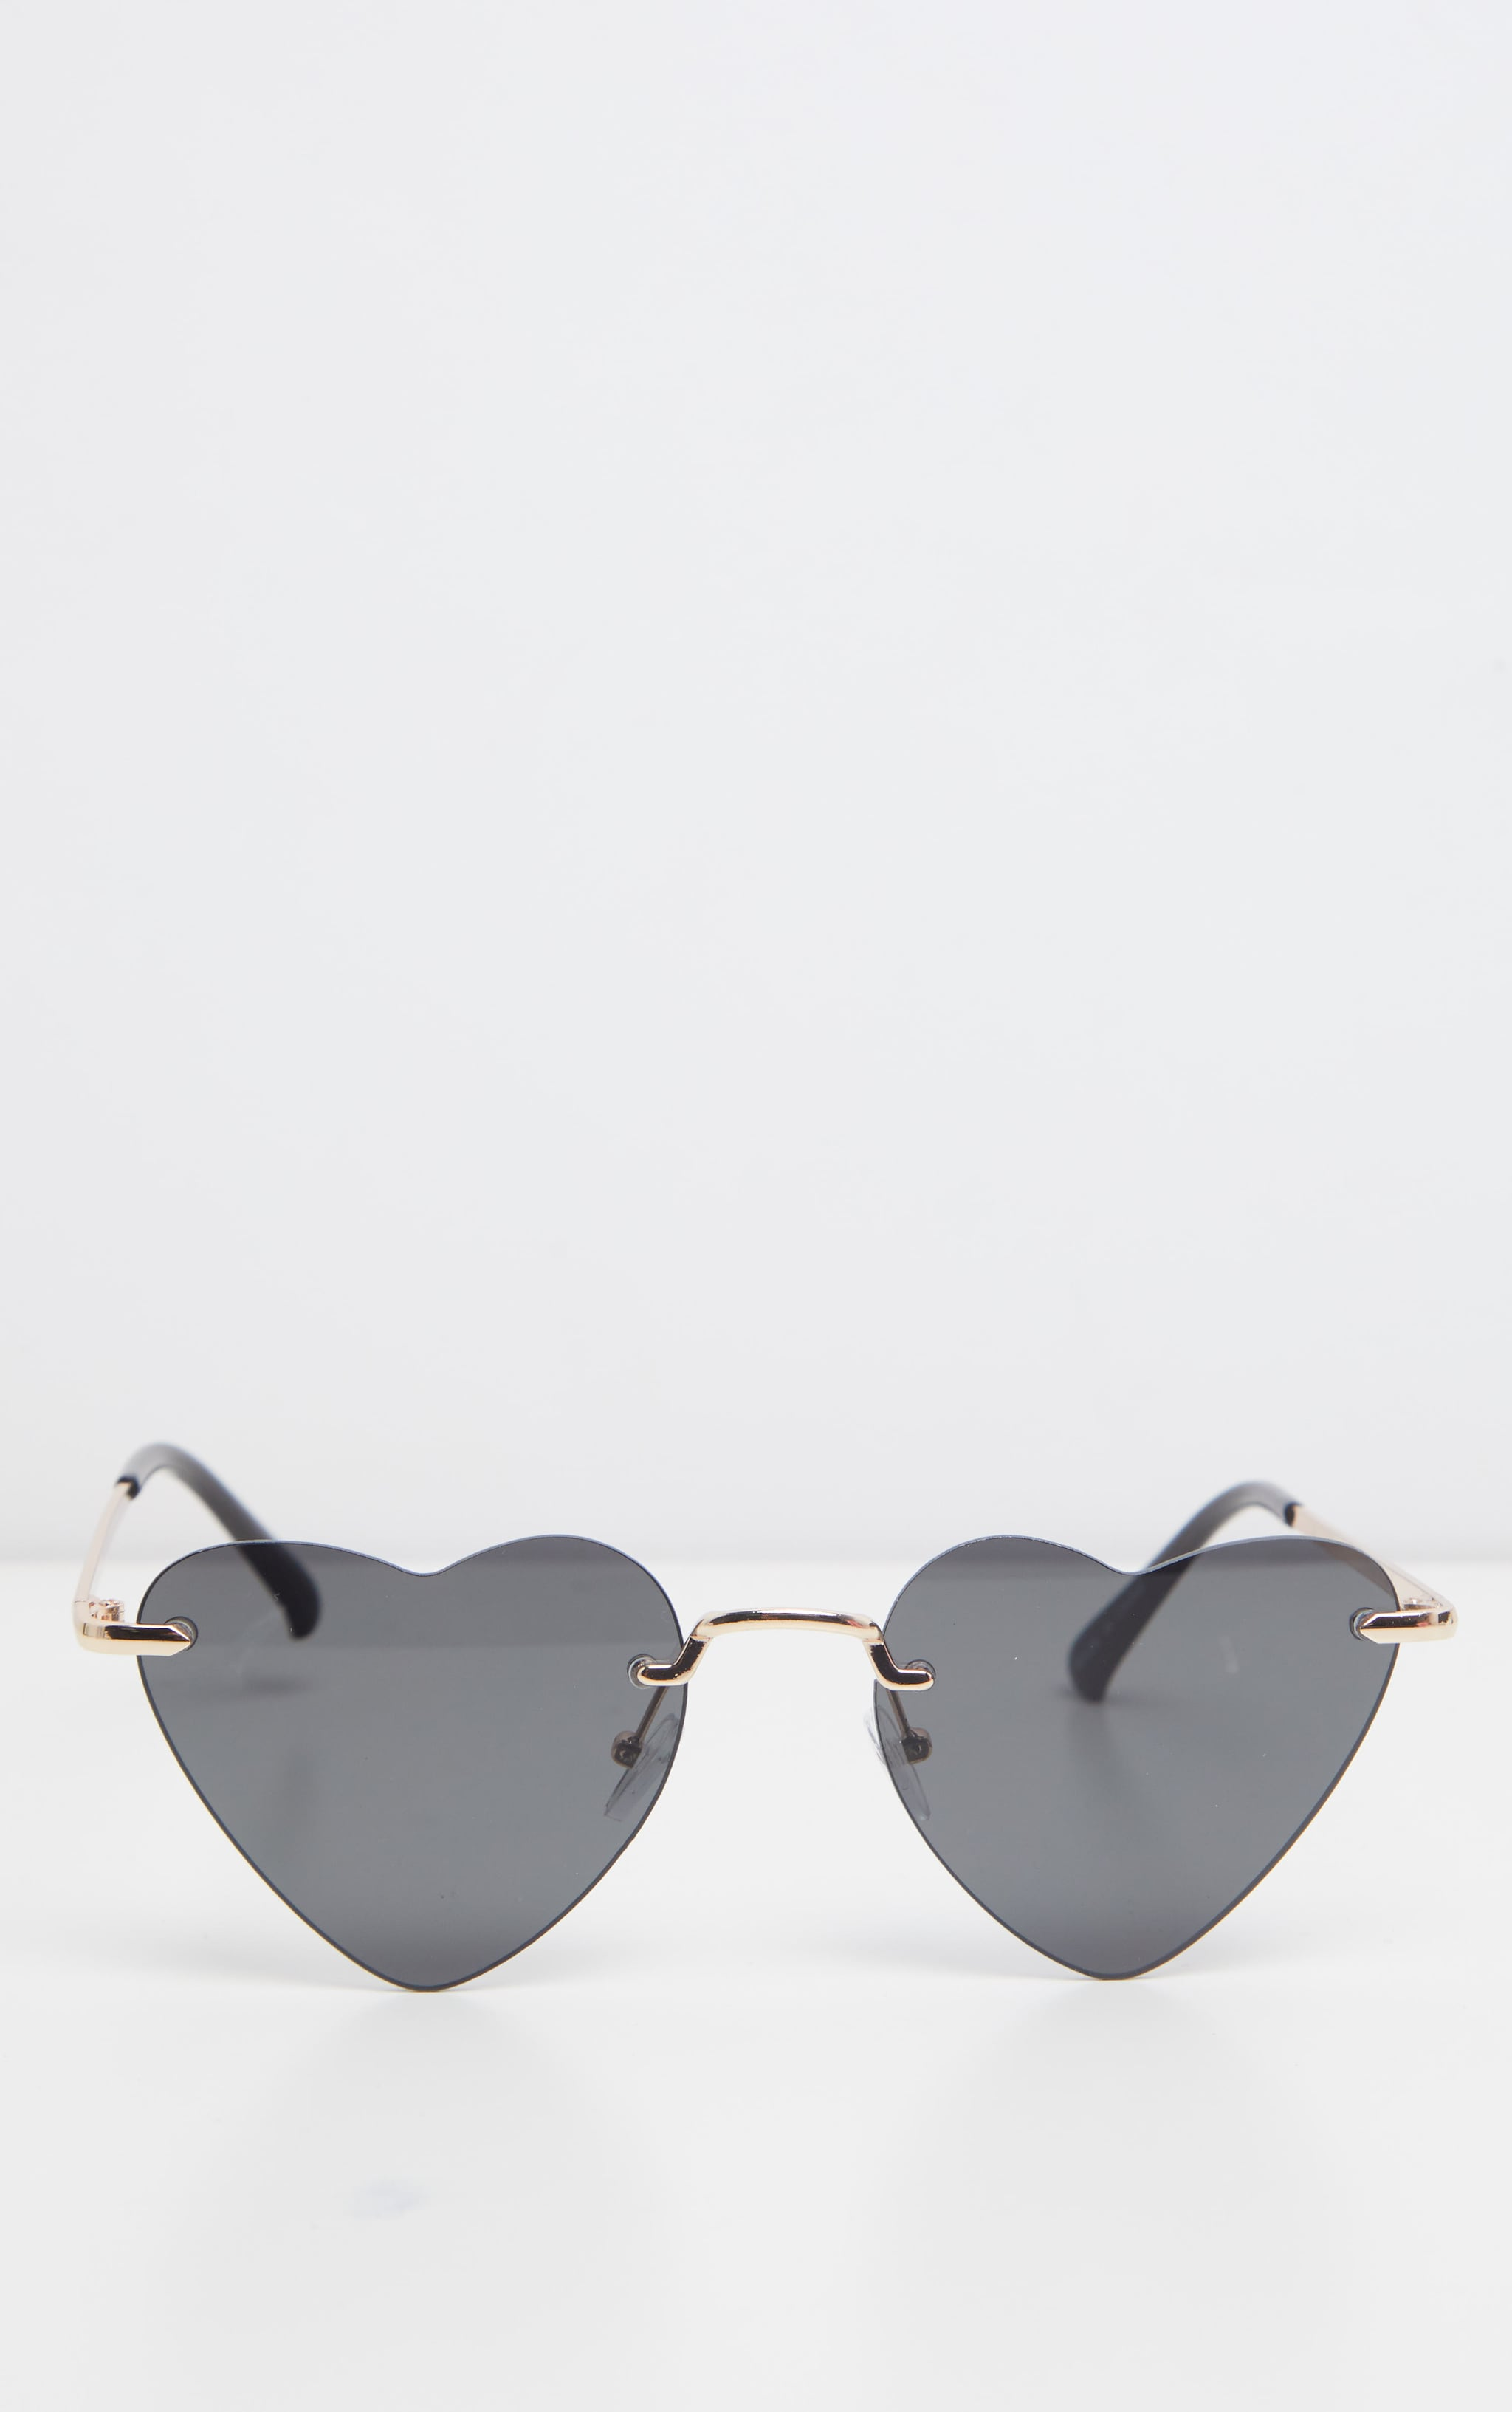 Black Heart Shaped Sunglasses 2